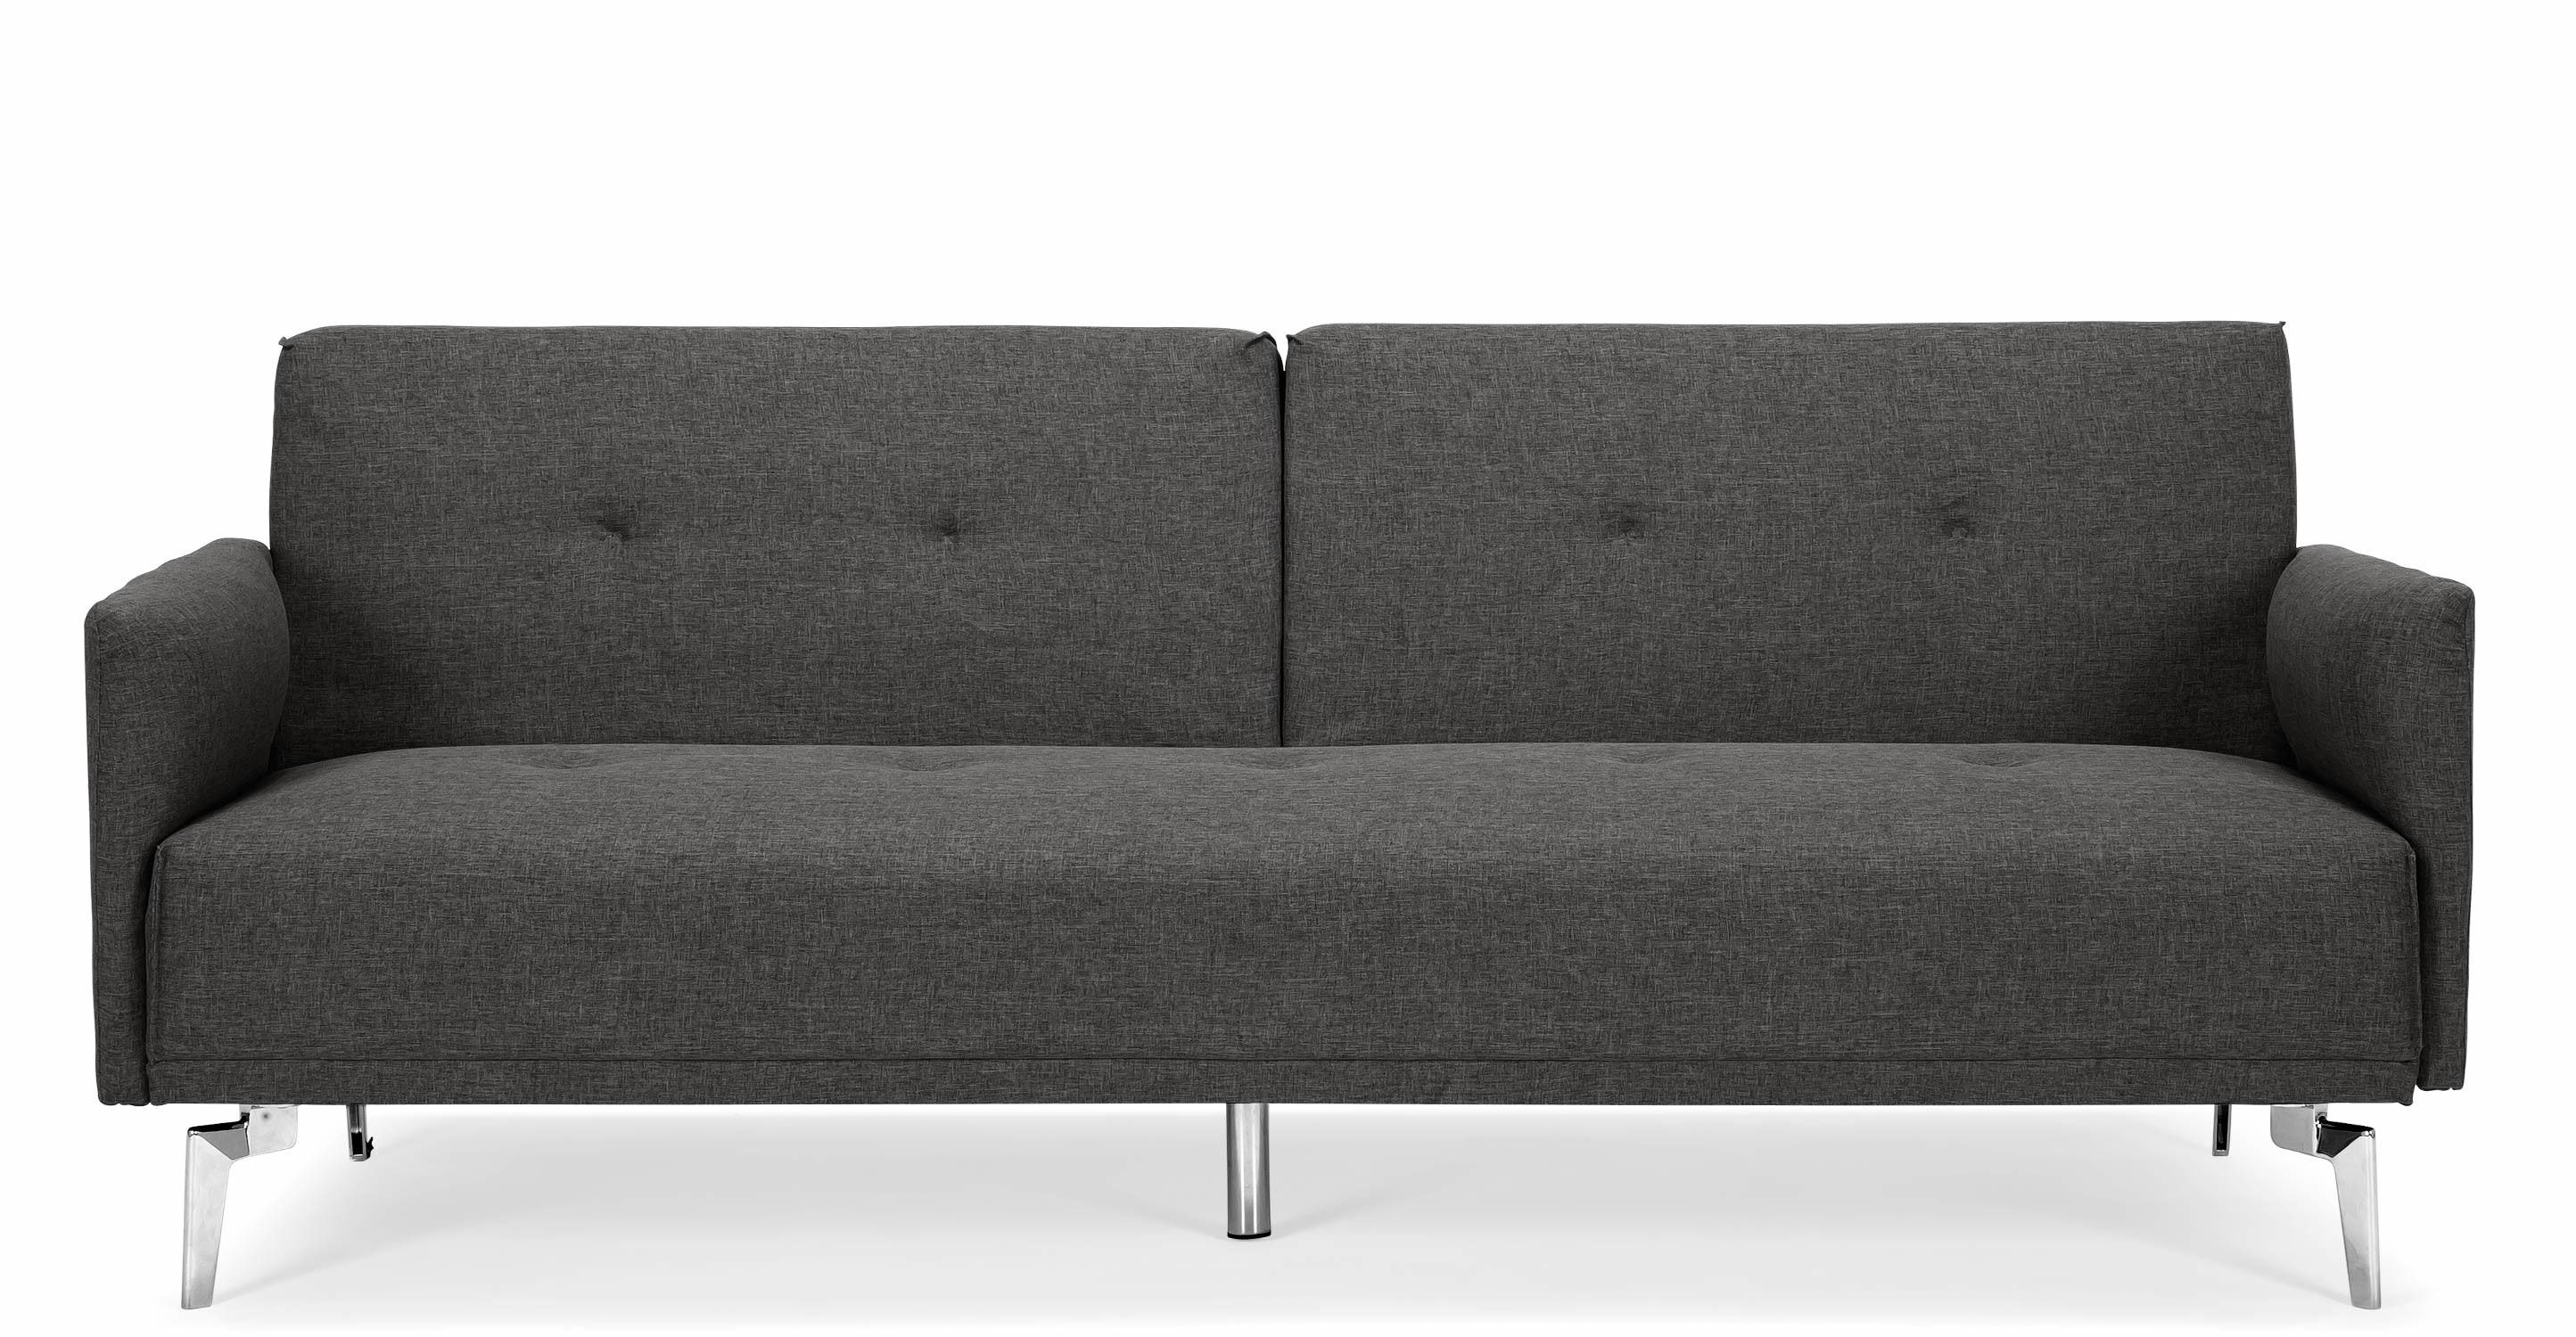 Make Sure Your Home Is Always Ready For Guests With The Akio Sofa